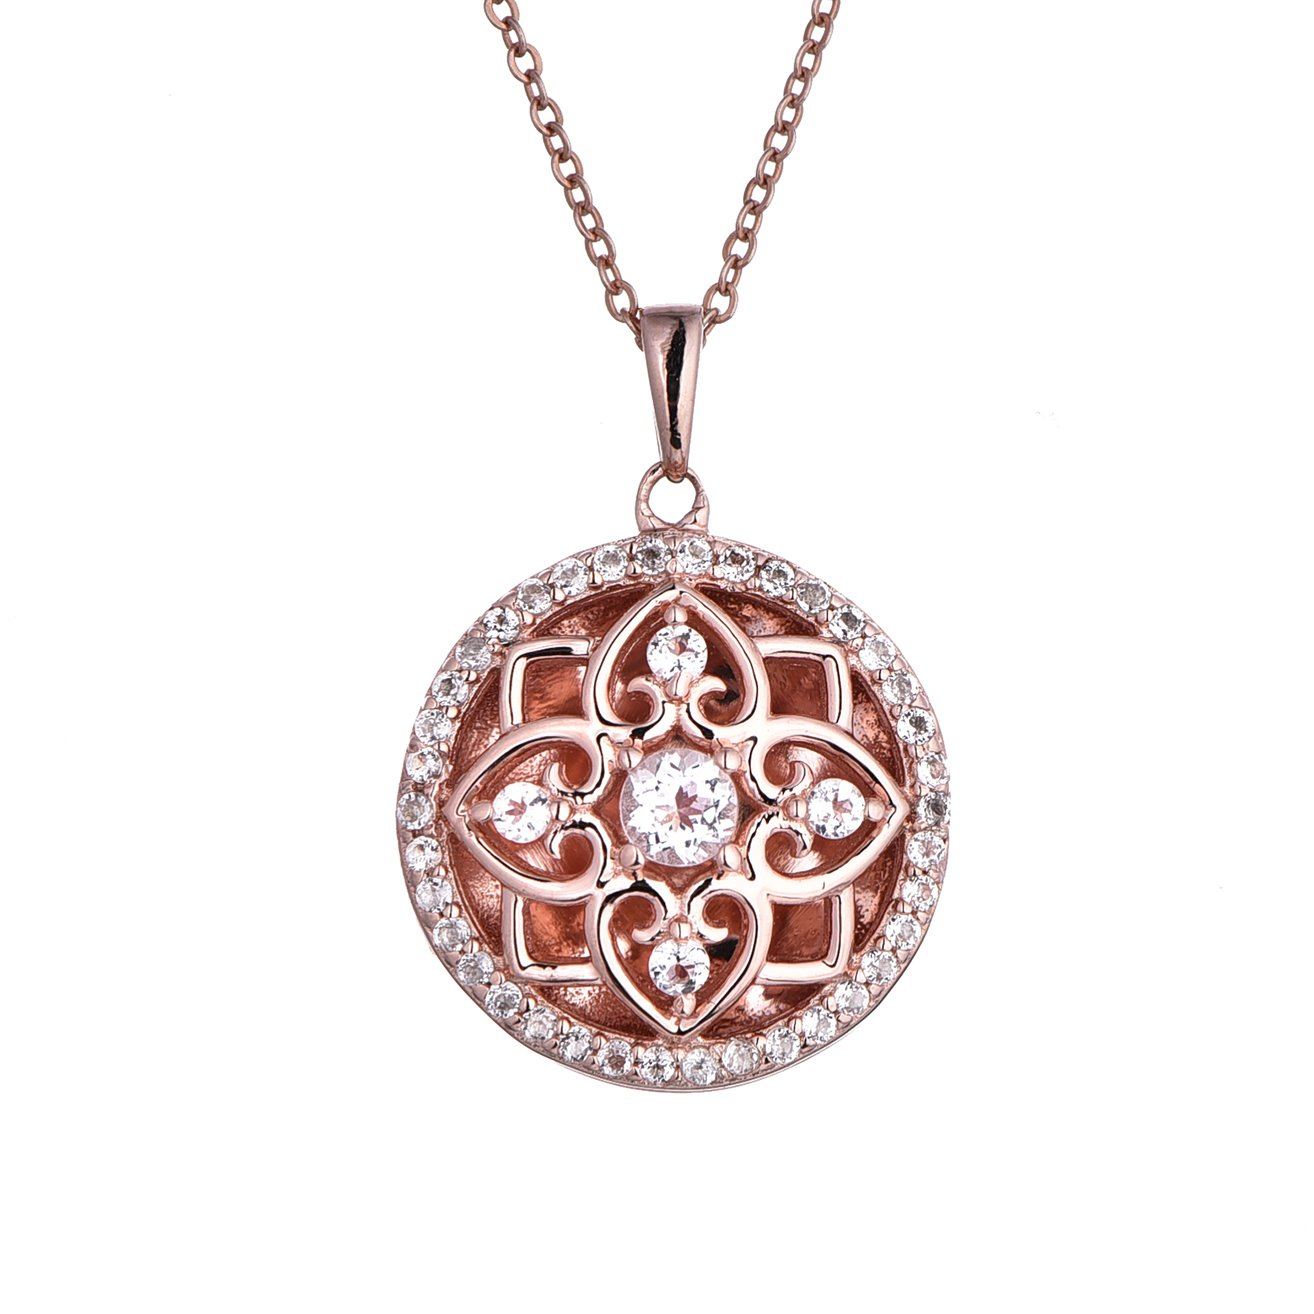 With You Lockets Rose Gold-White Topaz-Round-Custom Photo Locket Necklace-18inch chain-The Elsie